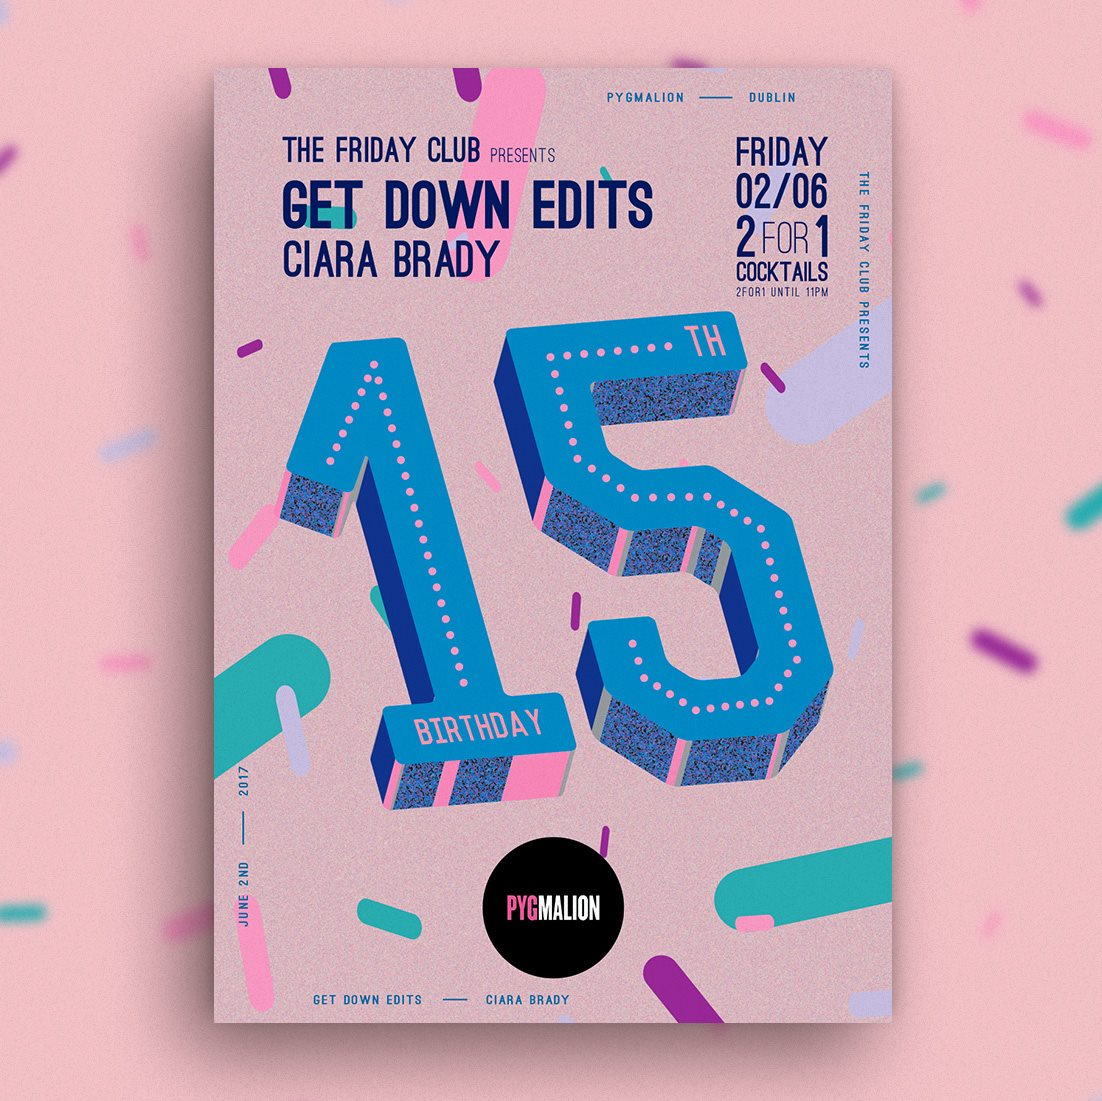 Pyg presents Get Down Edits - Flyer front